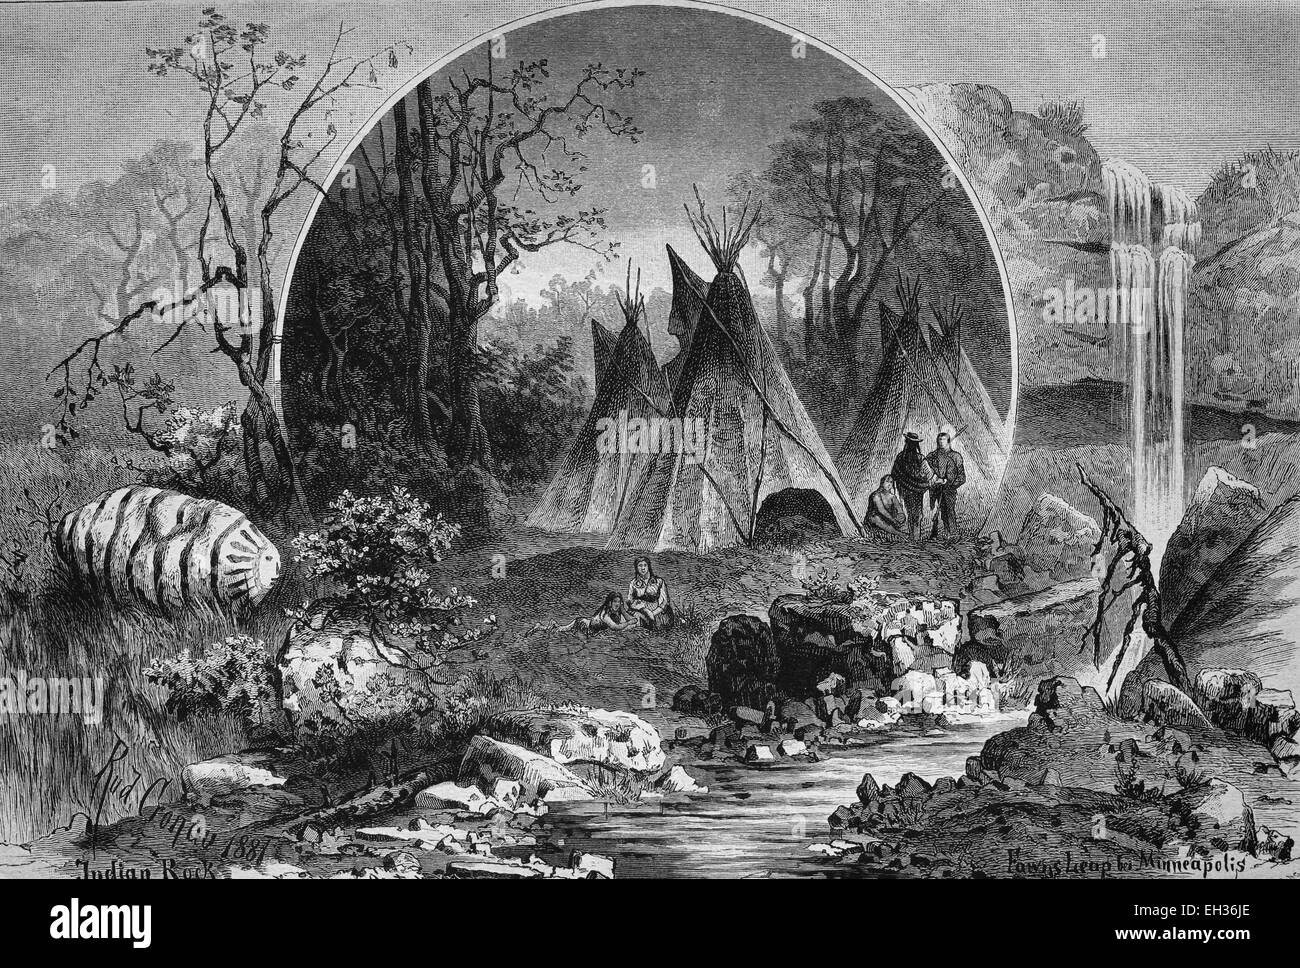 Camp of the Sioux, Native Americans in Minnesota, wood engraving, 1880 - Stock Image